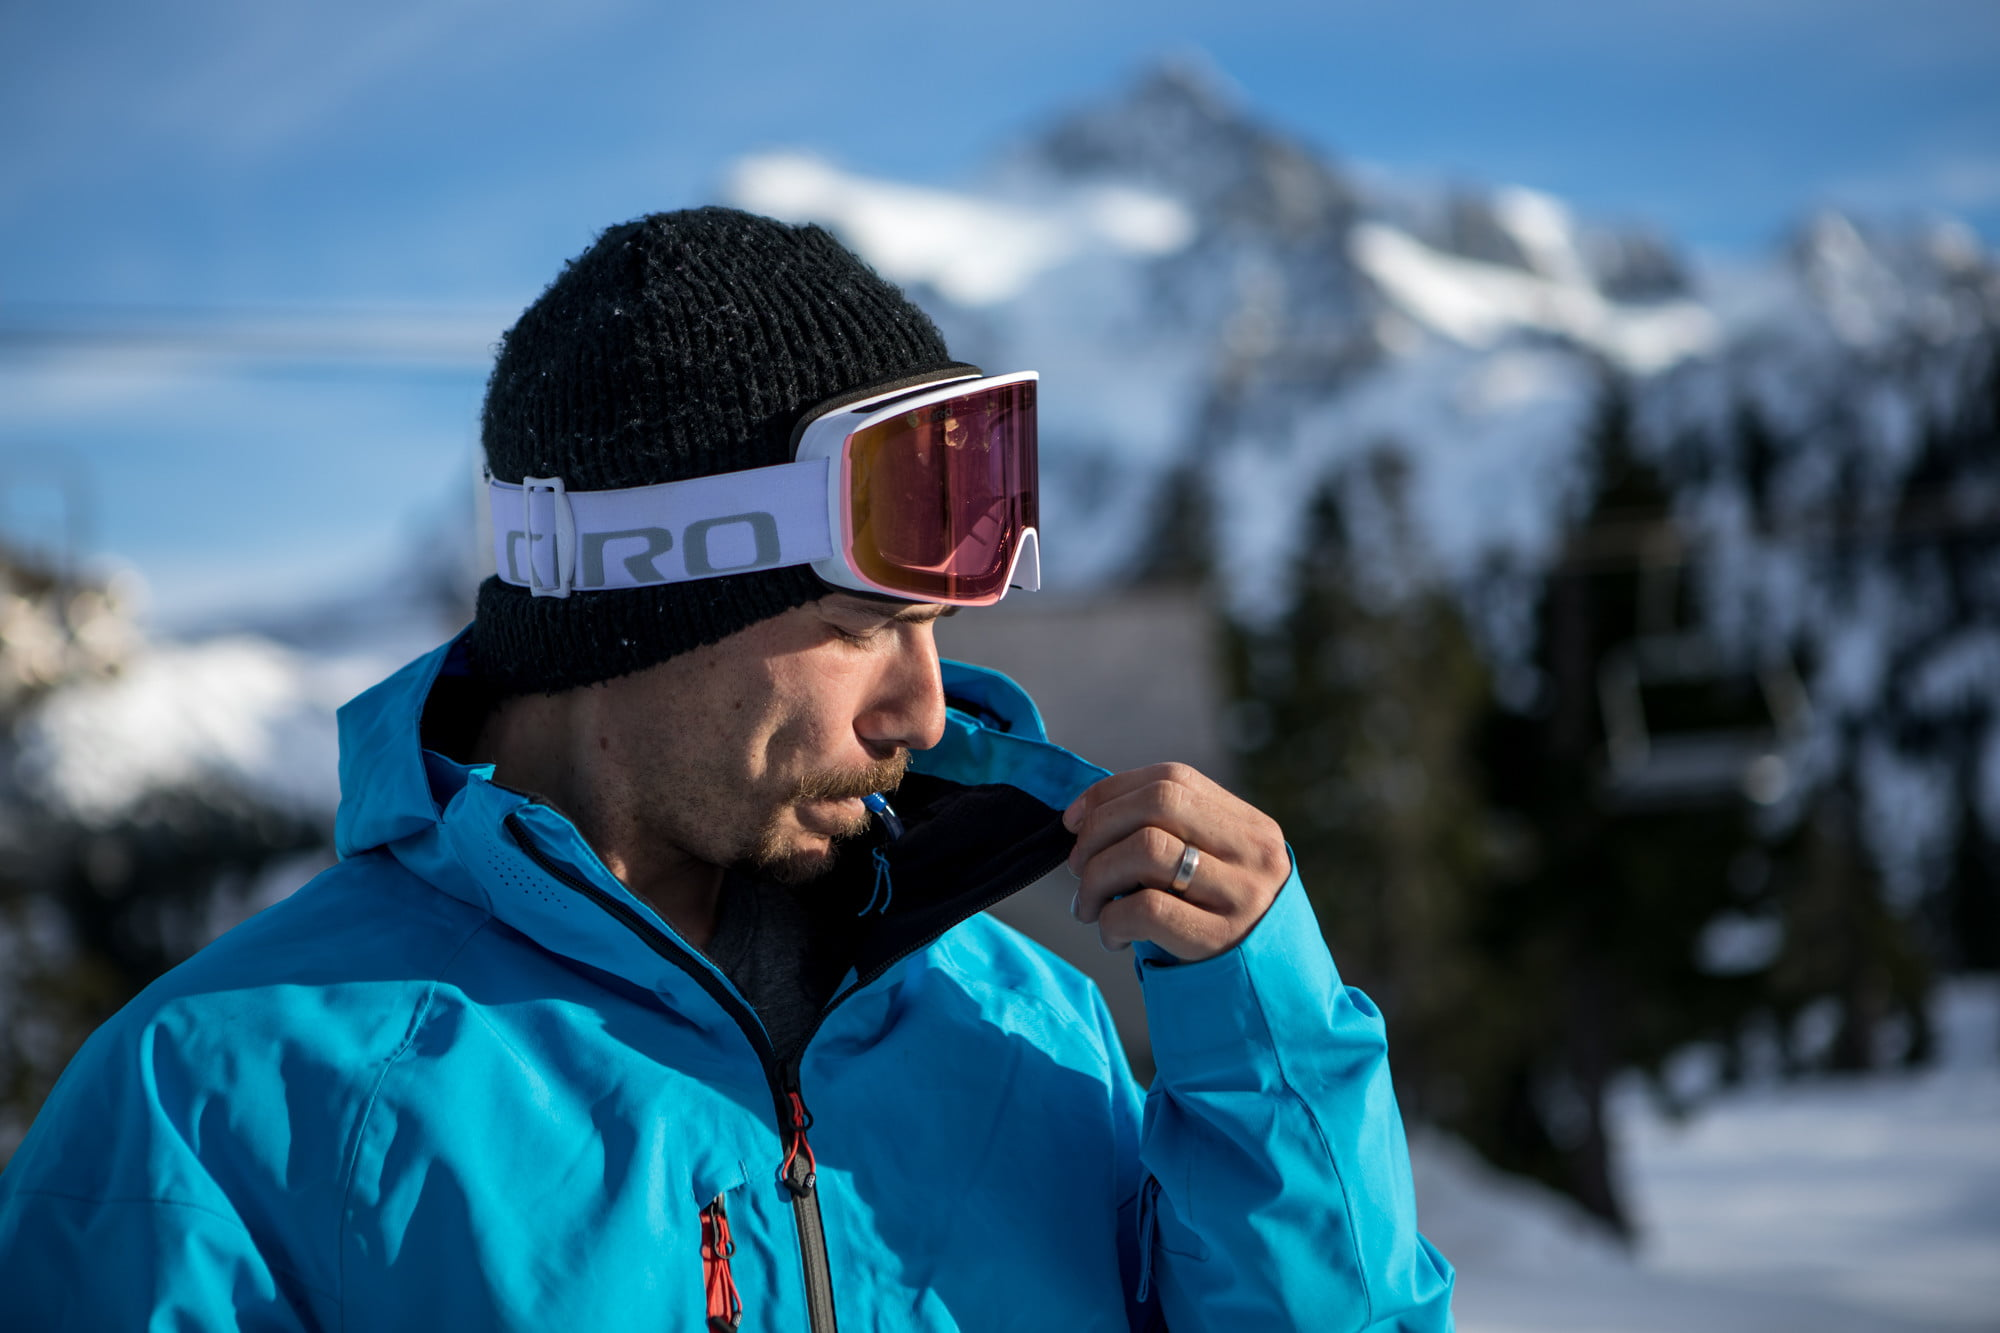 686's Hydrastash jacket ensures you will stay hydrated on the slopes |  Digital Trends